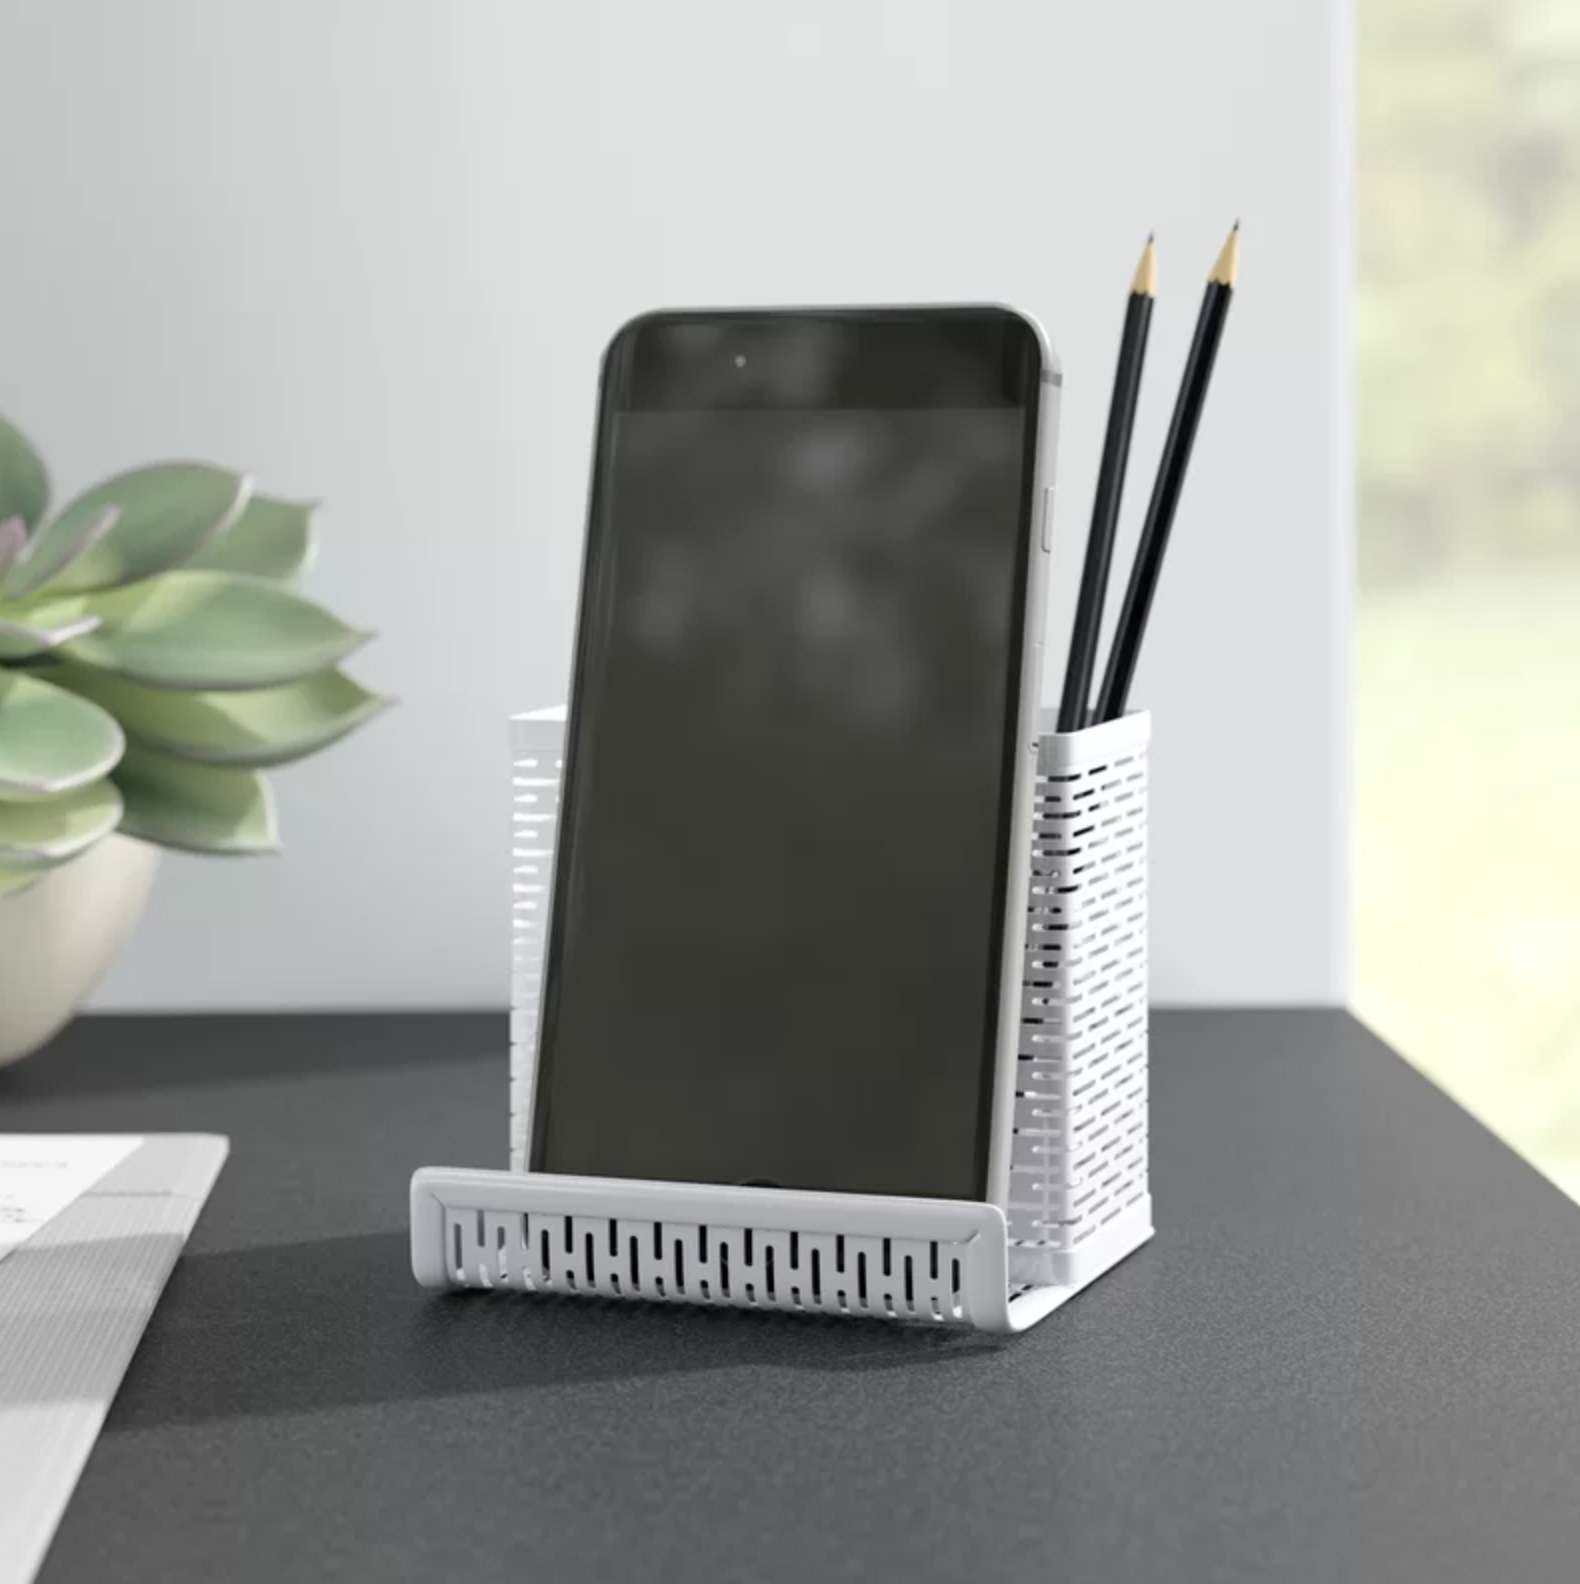 The metal pencil and phone holder